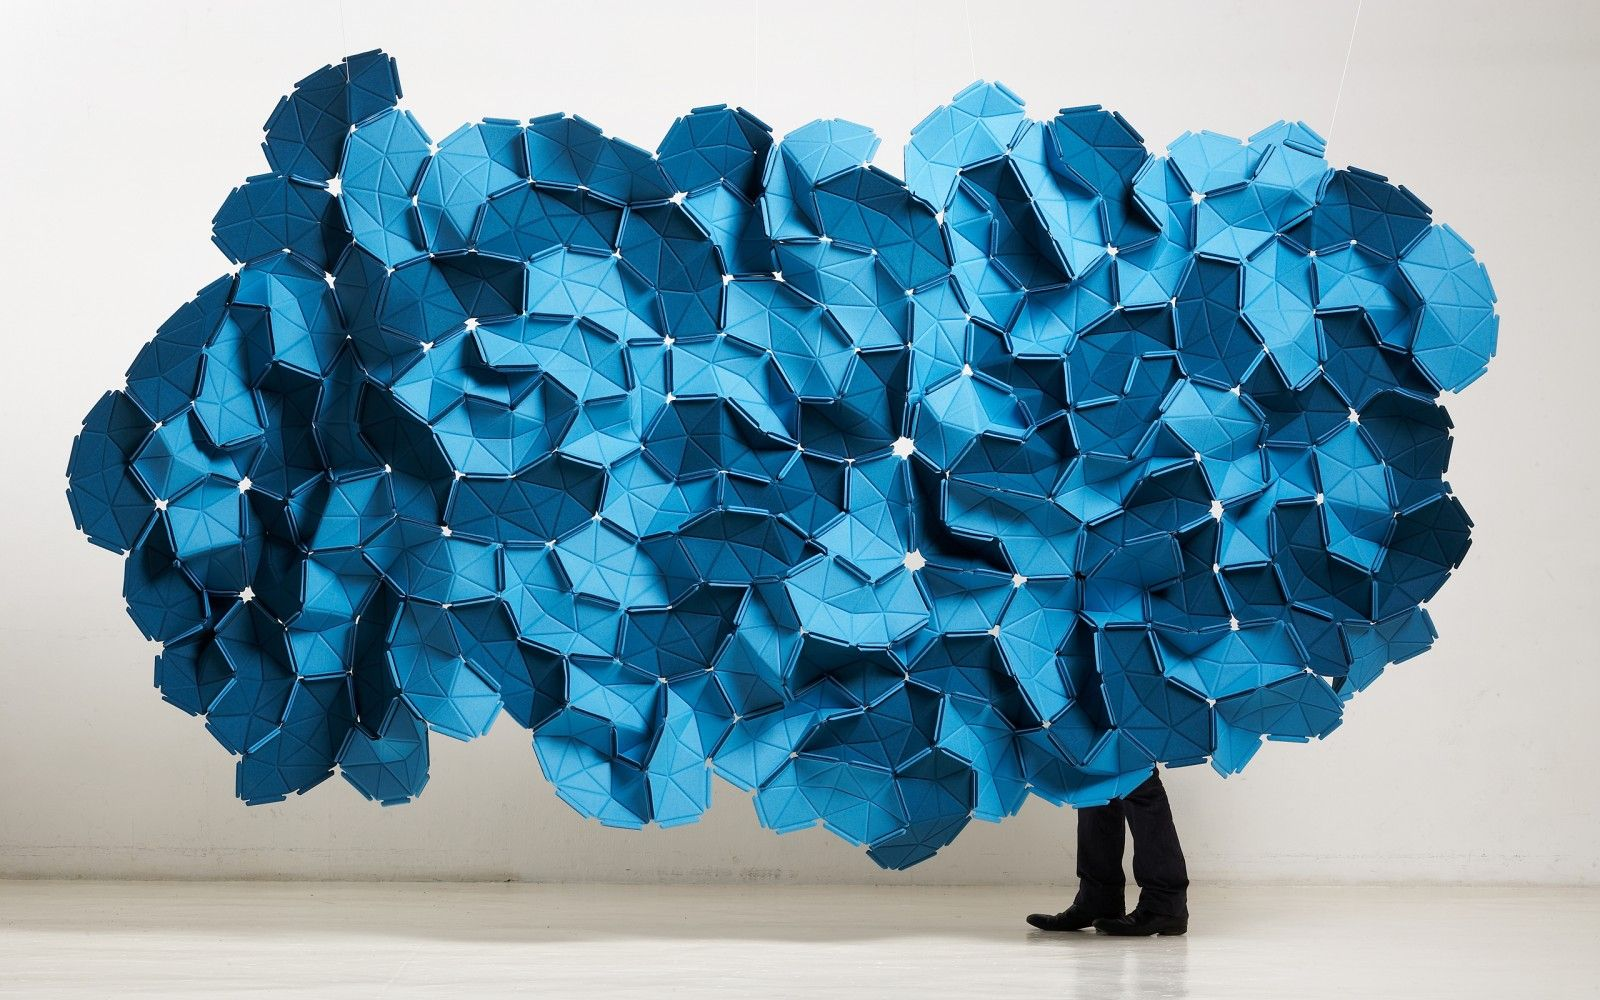 clouds by ronan and erwan bouroullec for kvadrat modular system